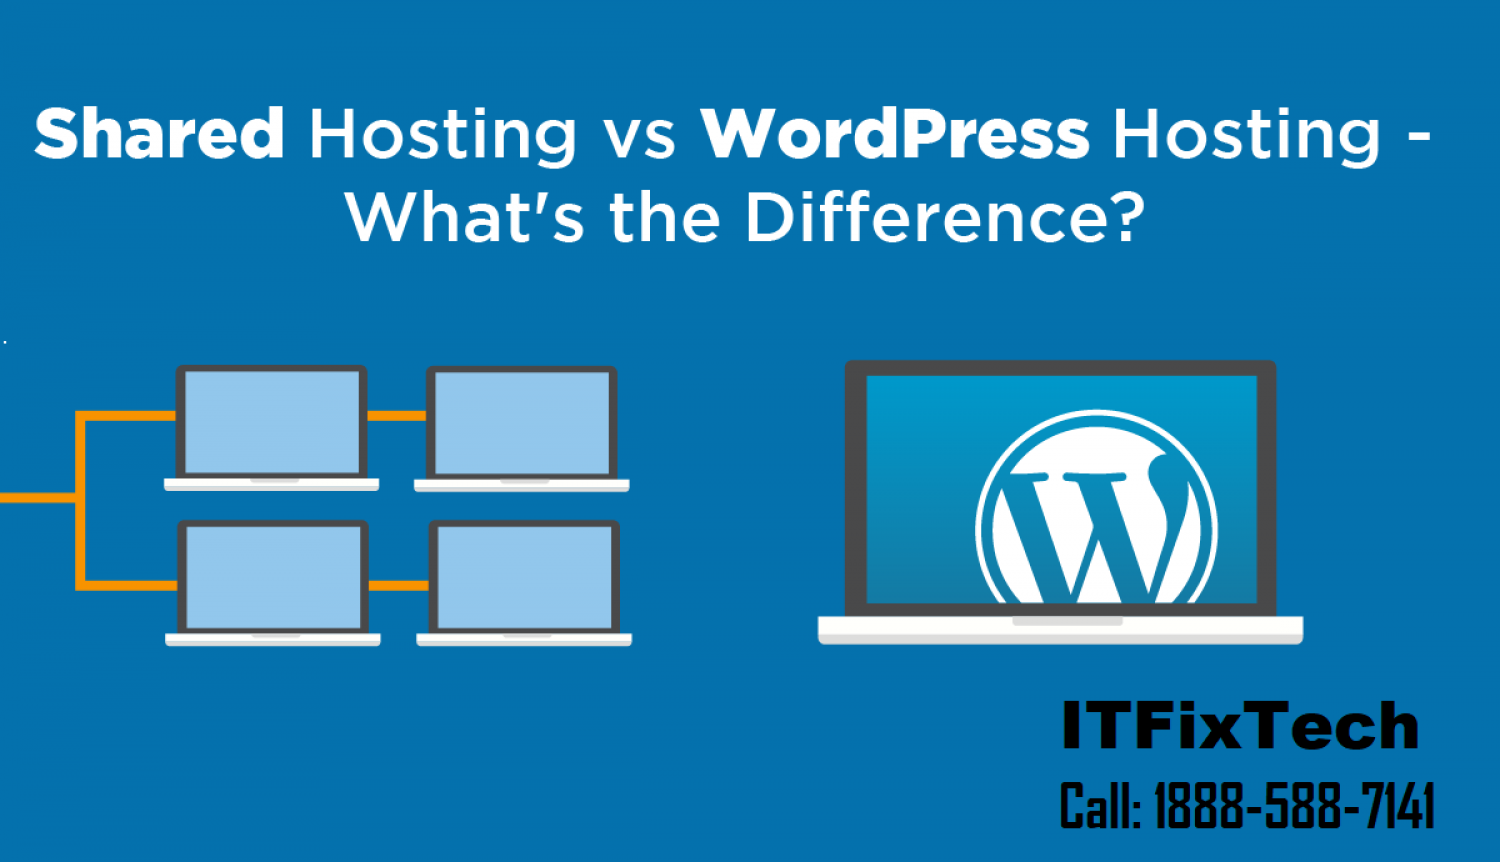 What Is the Difference Between Managed and Shared WordPress Hosting? Infographic